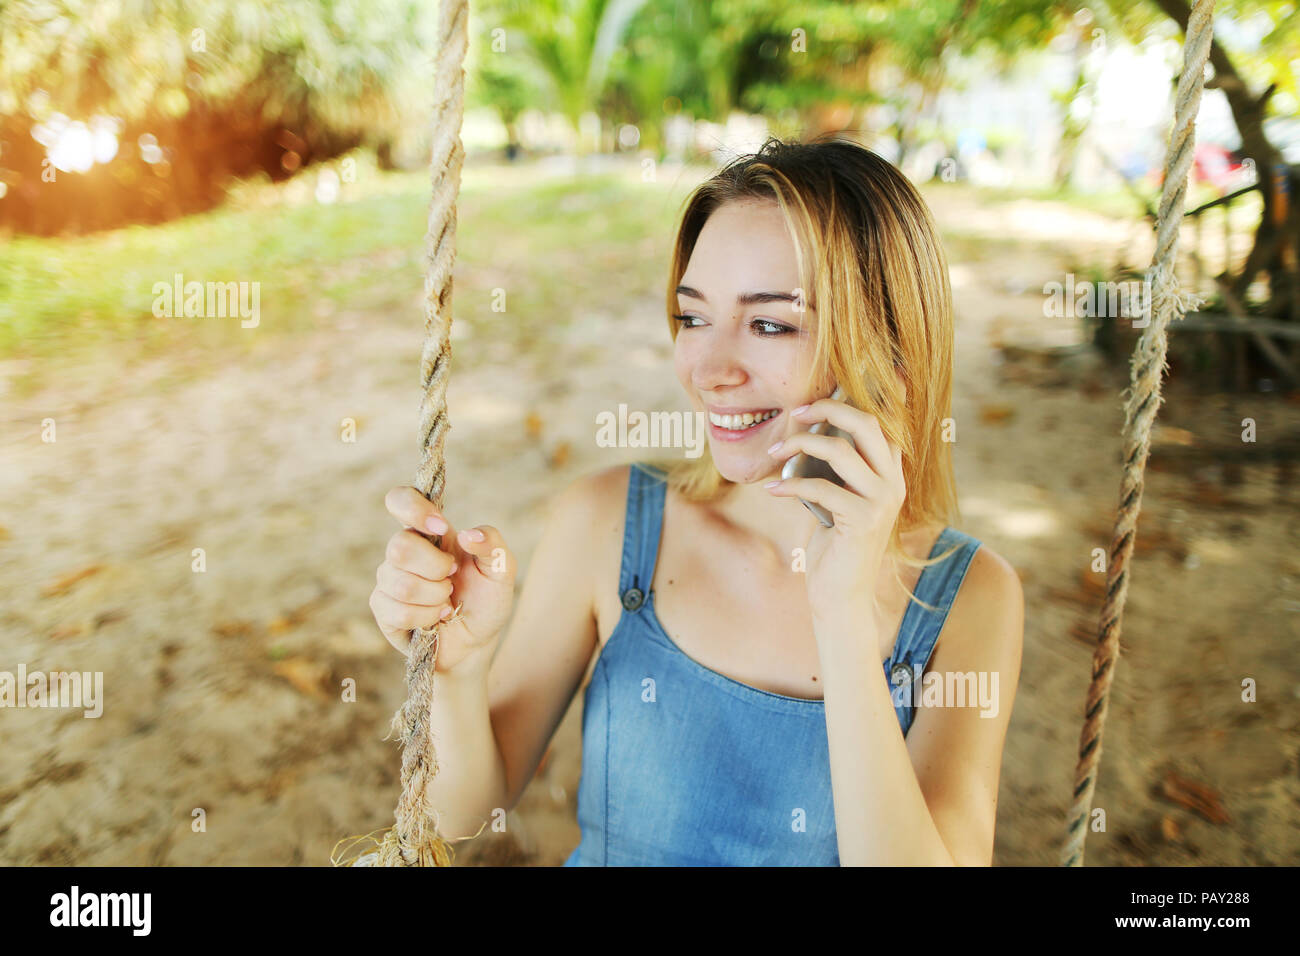 Sunny light portrait of young blonde girl talking by smartphone and riding swing in Bali, sand in background. - Stock Image